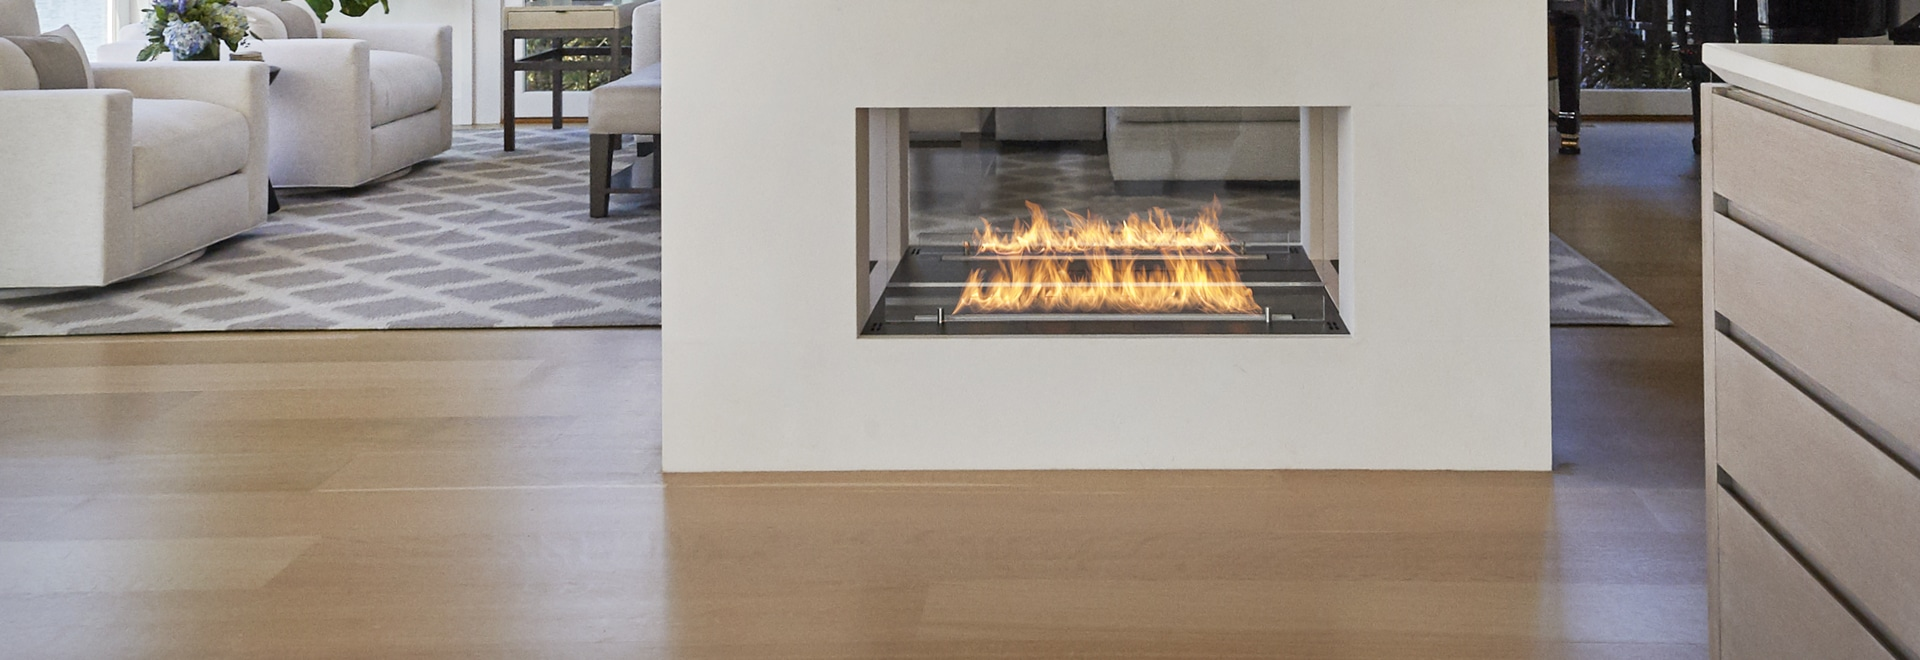 Bioethanol Fireplace open to 4 sides.